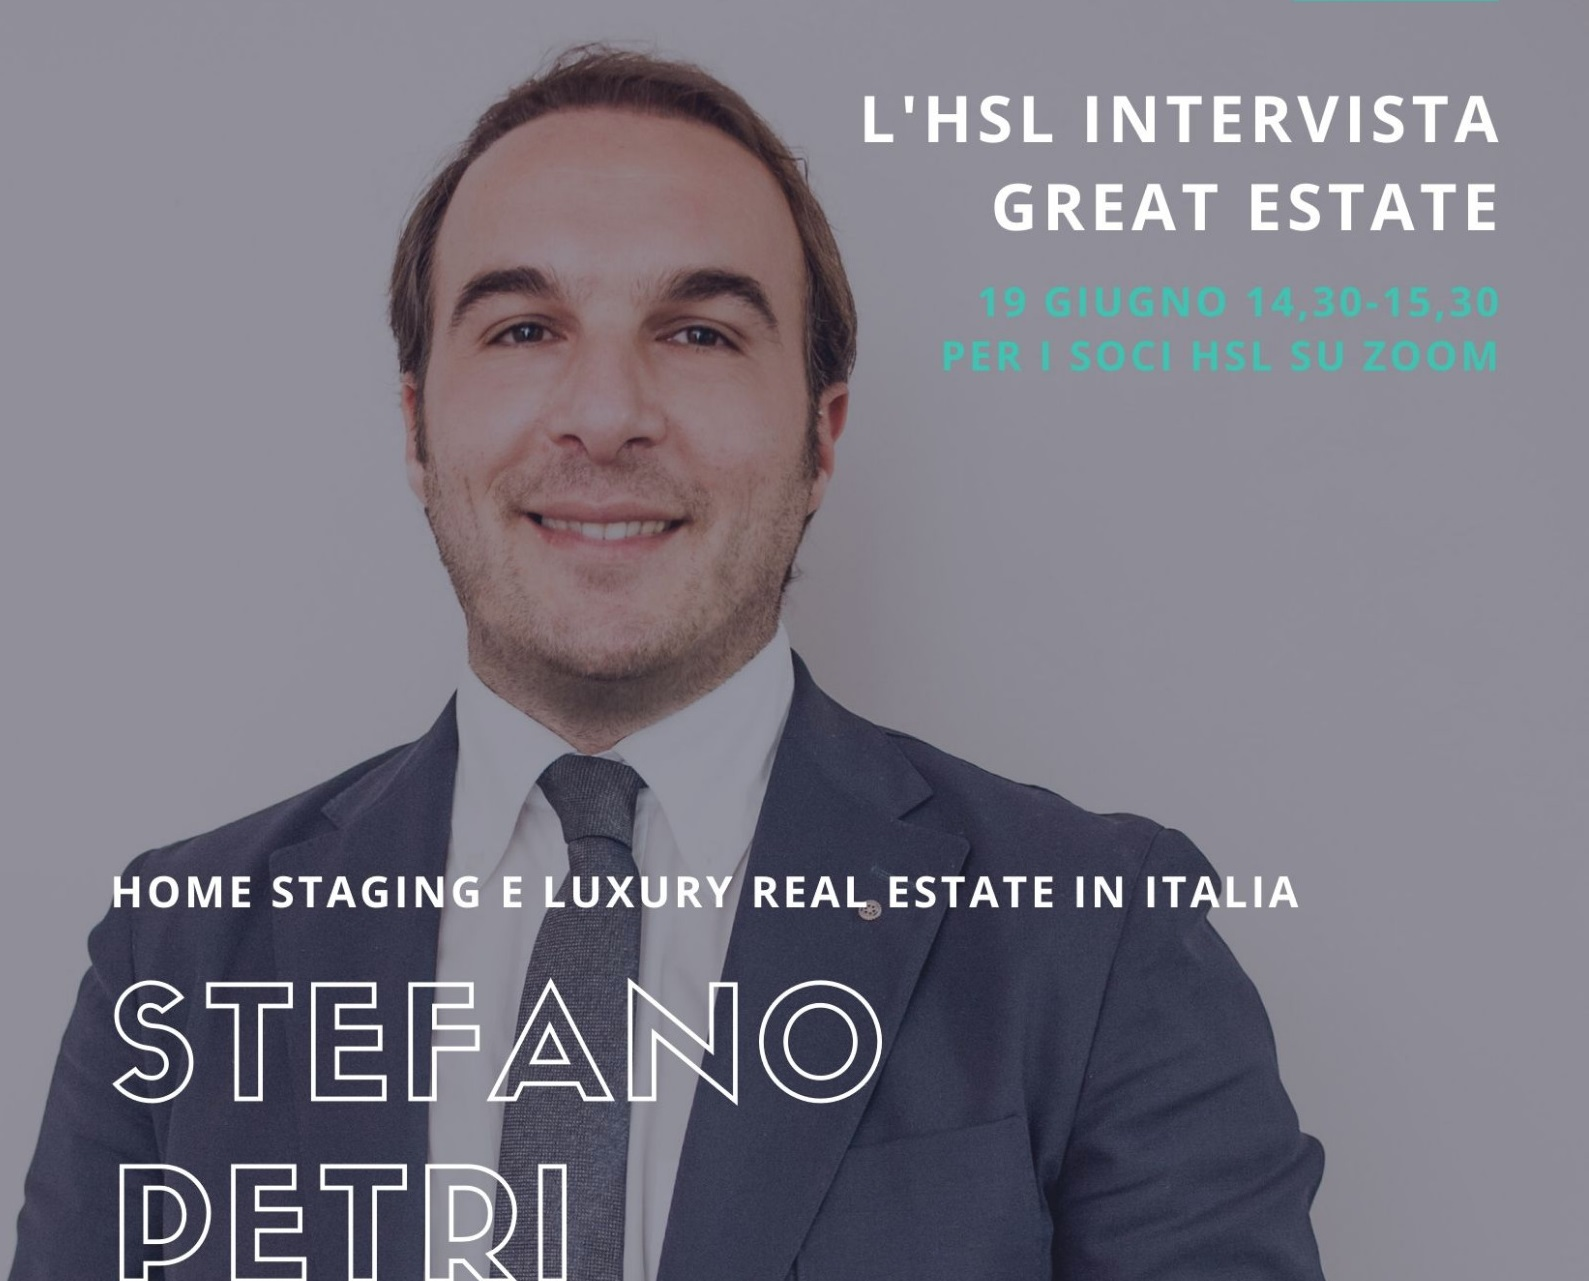 Home Staging Lovers intervista Stefano Petri, CEO del Network Great Estate